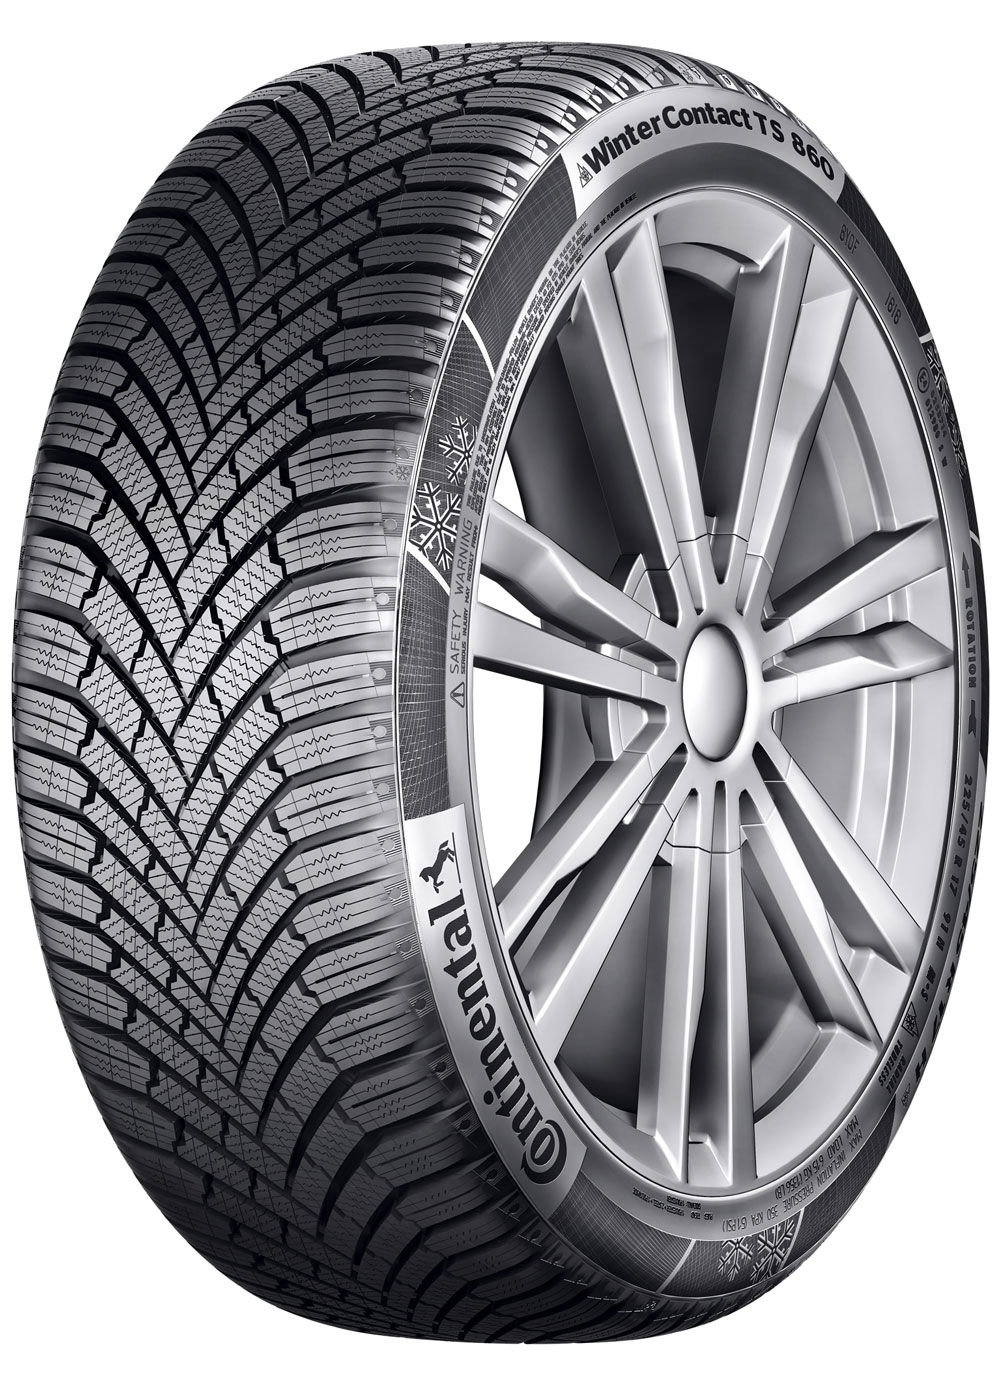 CONTINENTAL WINTER CONTACT TS860 215/45R16 90V XL